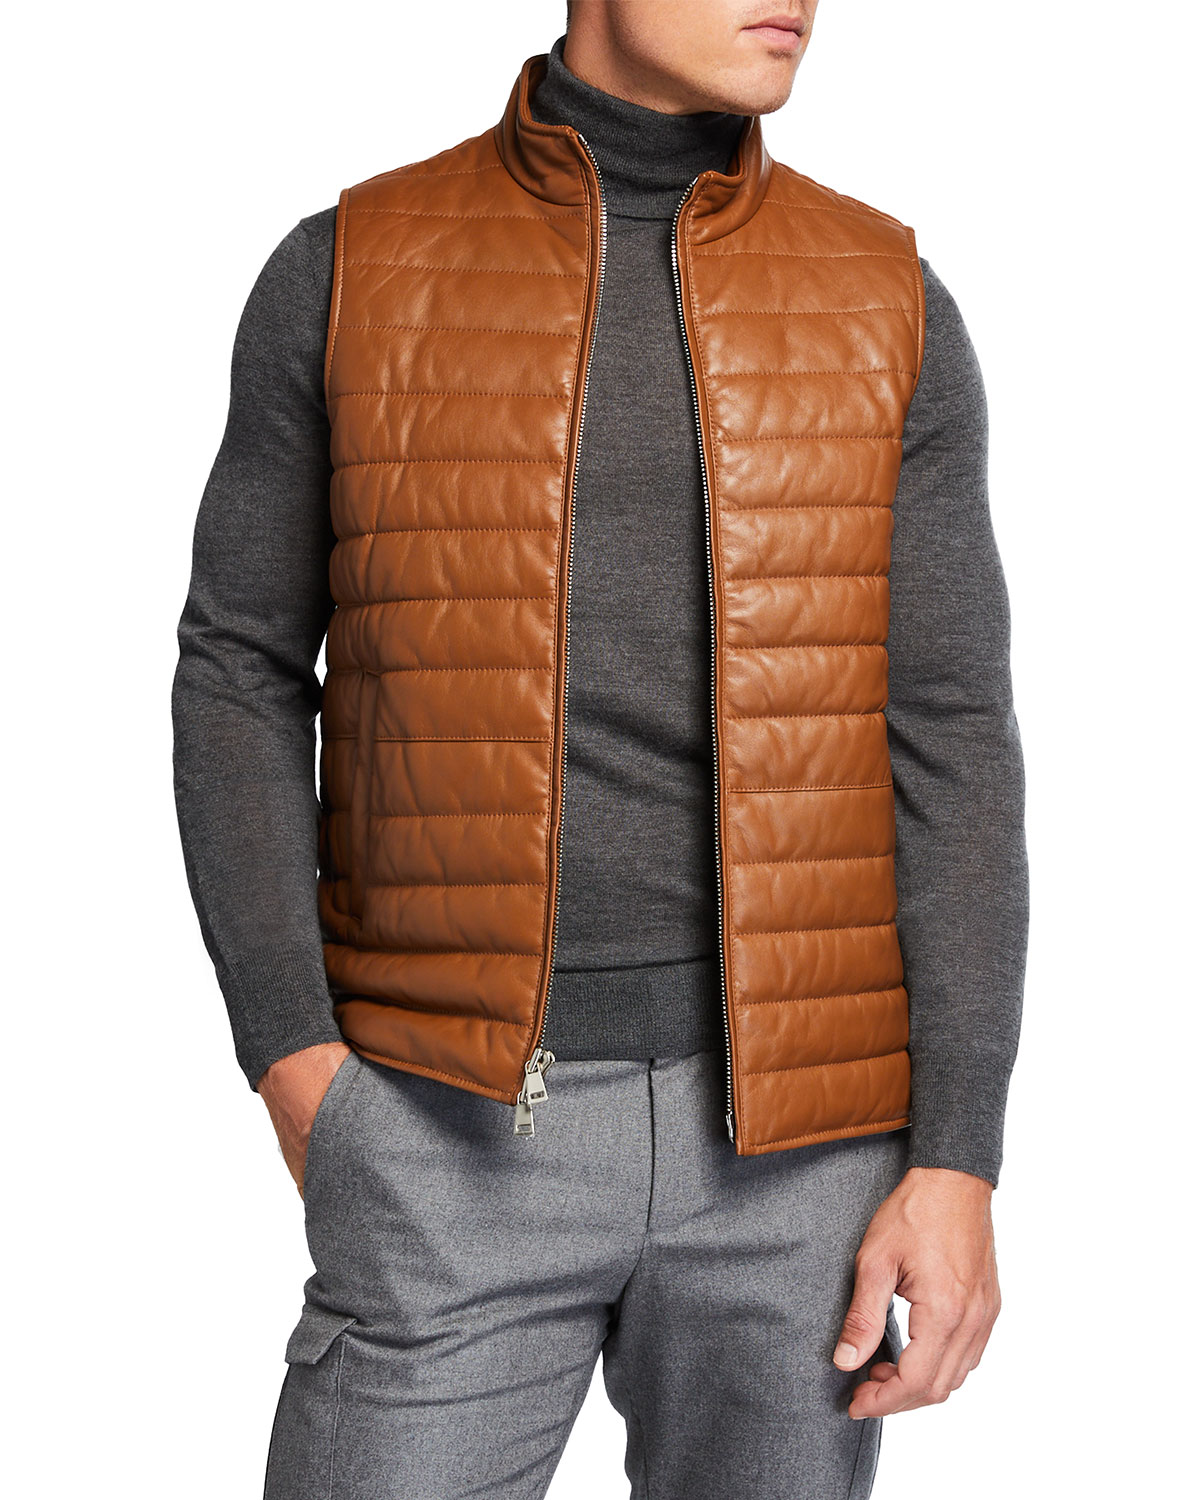 Neiman Marcus Men's Quilted Lamb Leather Vest